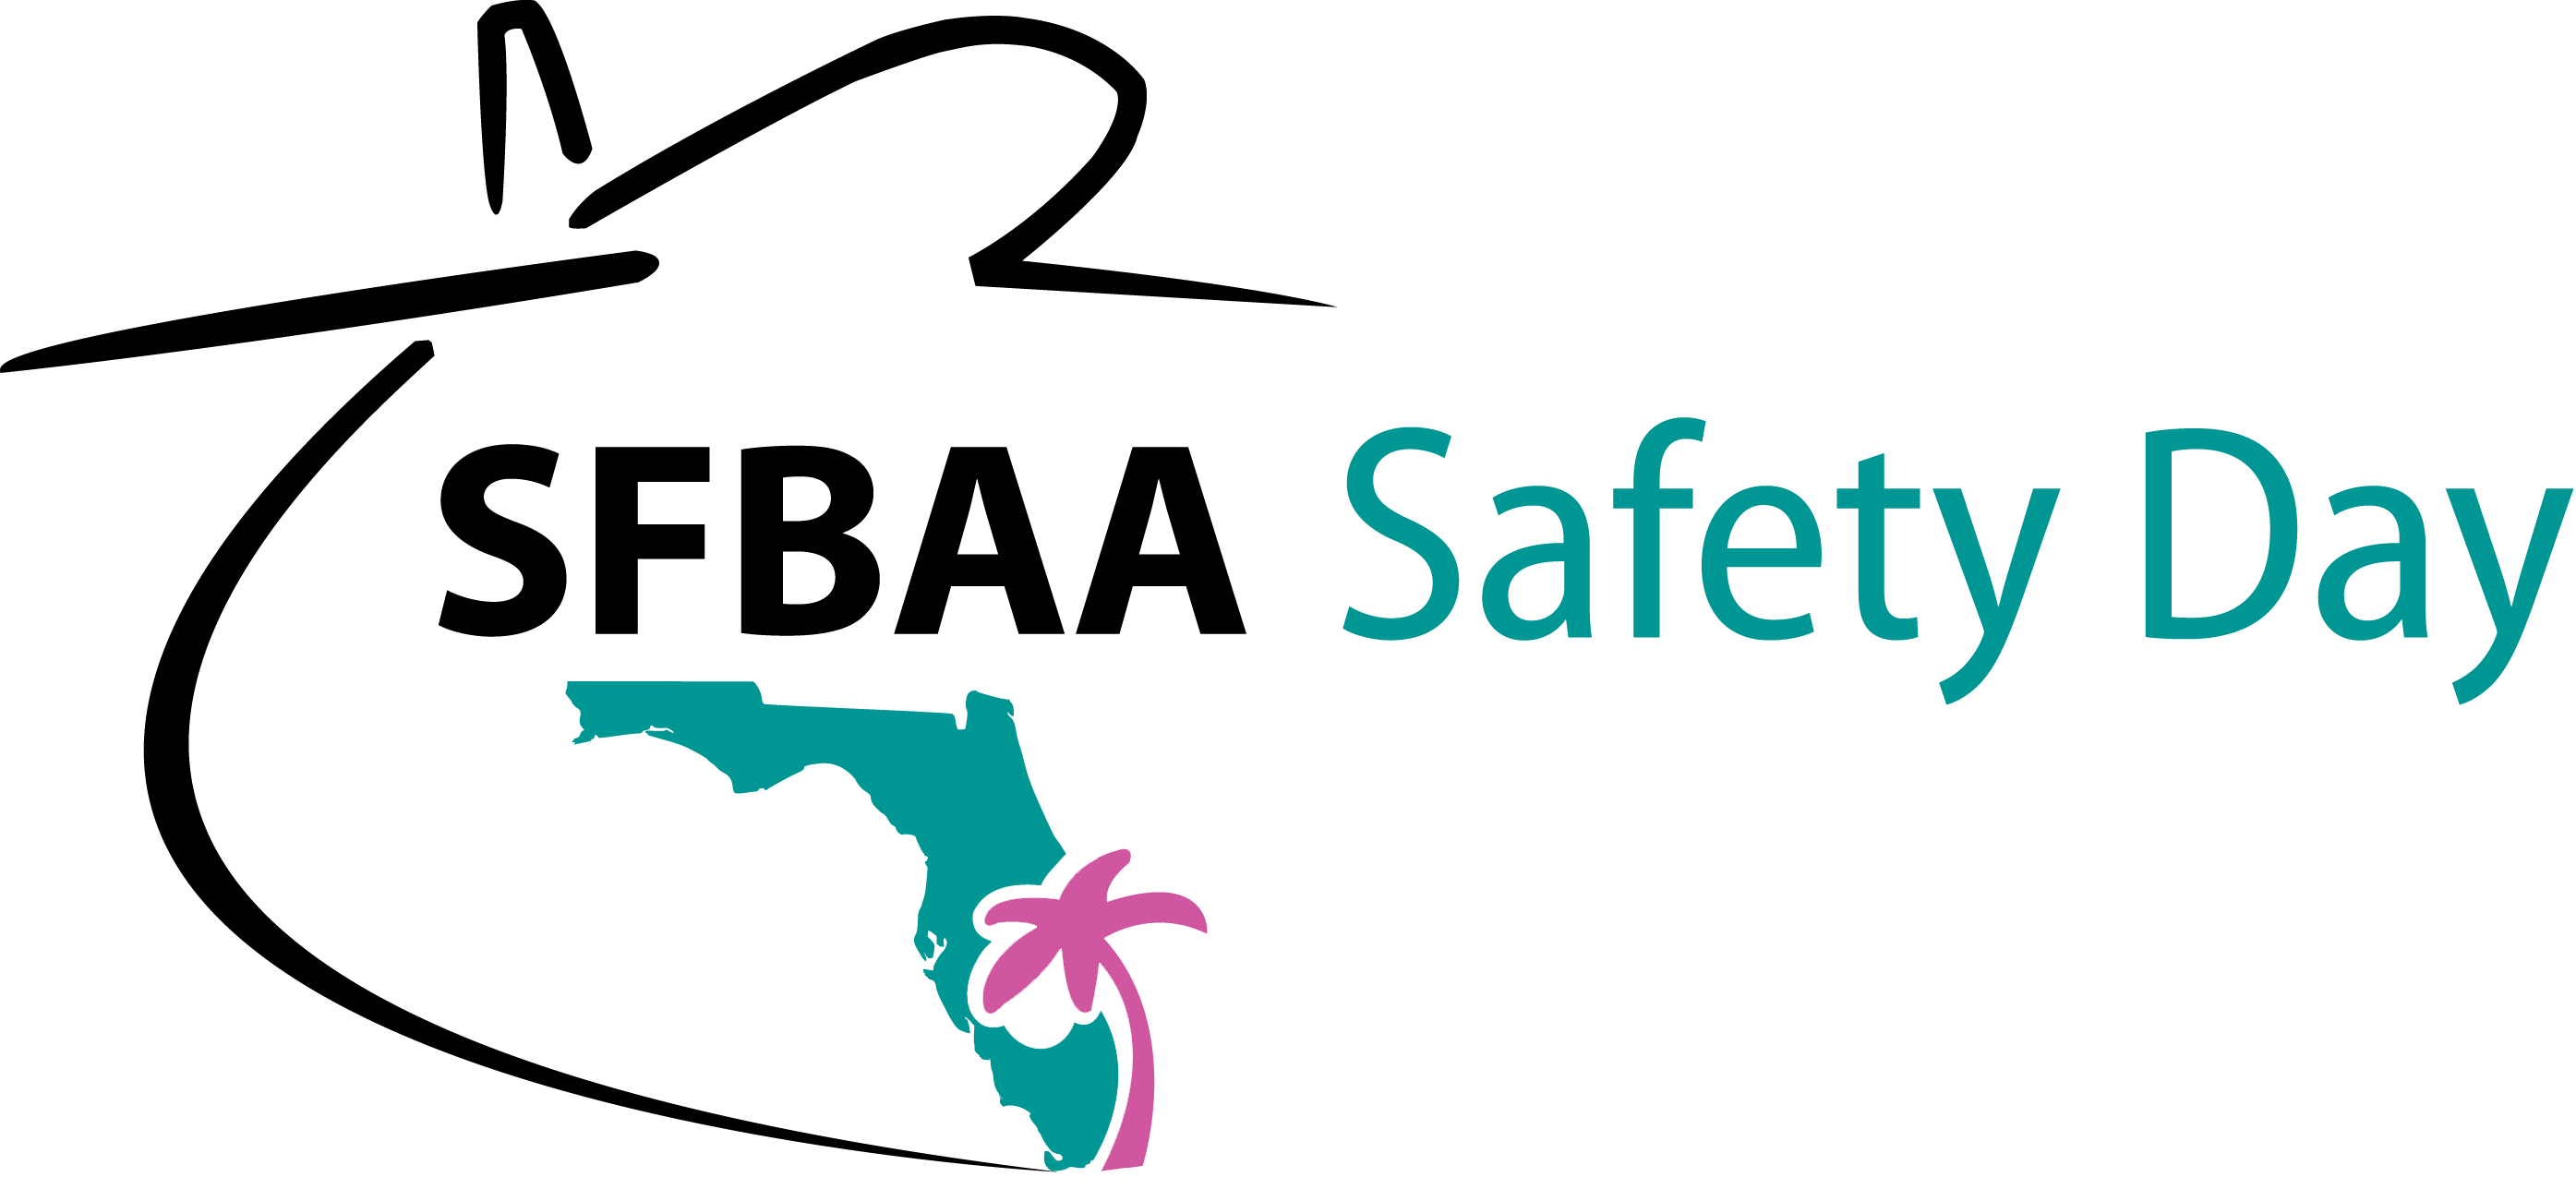 Safety clipart aviation safety. South florida business association